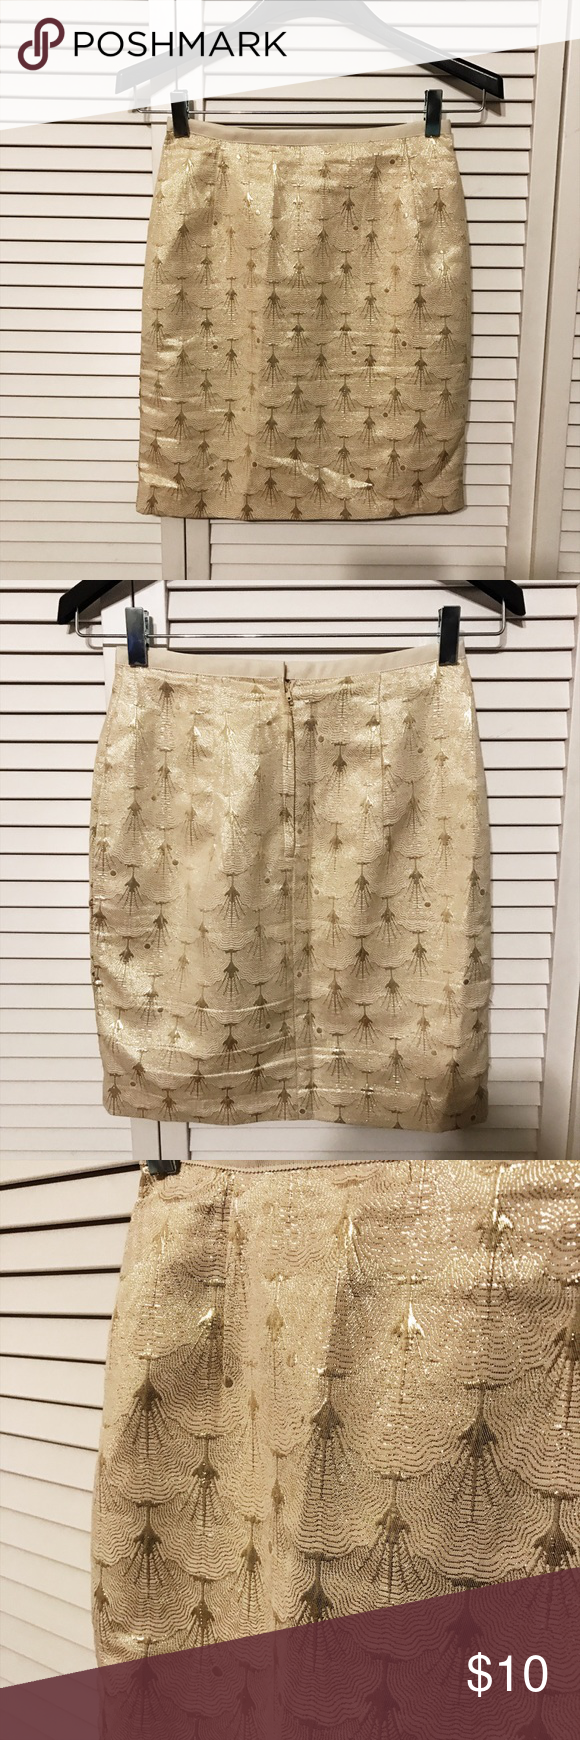 H&M pencil skirt - Gold & Cream Like new, kept in great condition! Gold detailed skirt. H&M size 4 fits like a small H&M Skirts Pencil